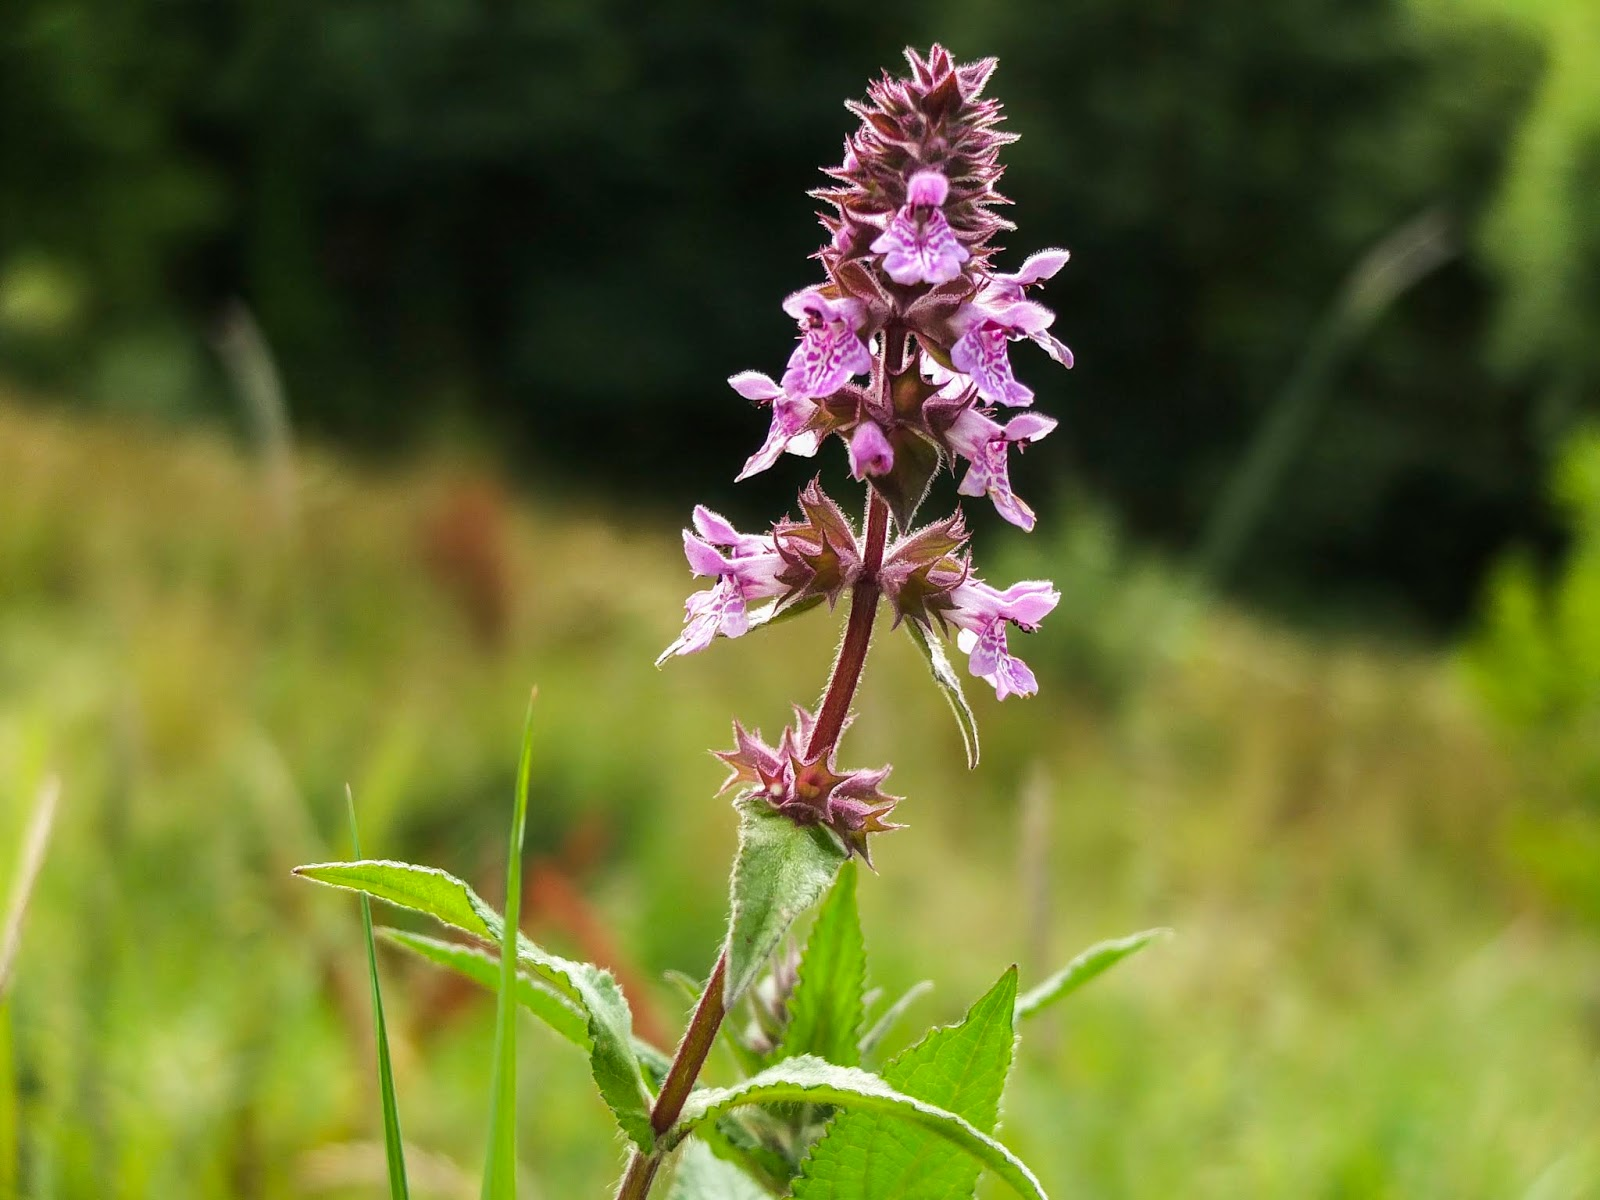 A single wildflower Orchid in a grassy field on a slope.